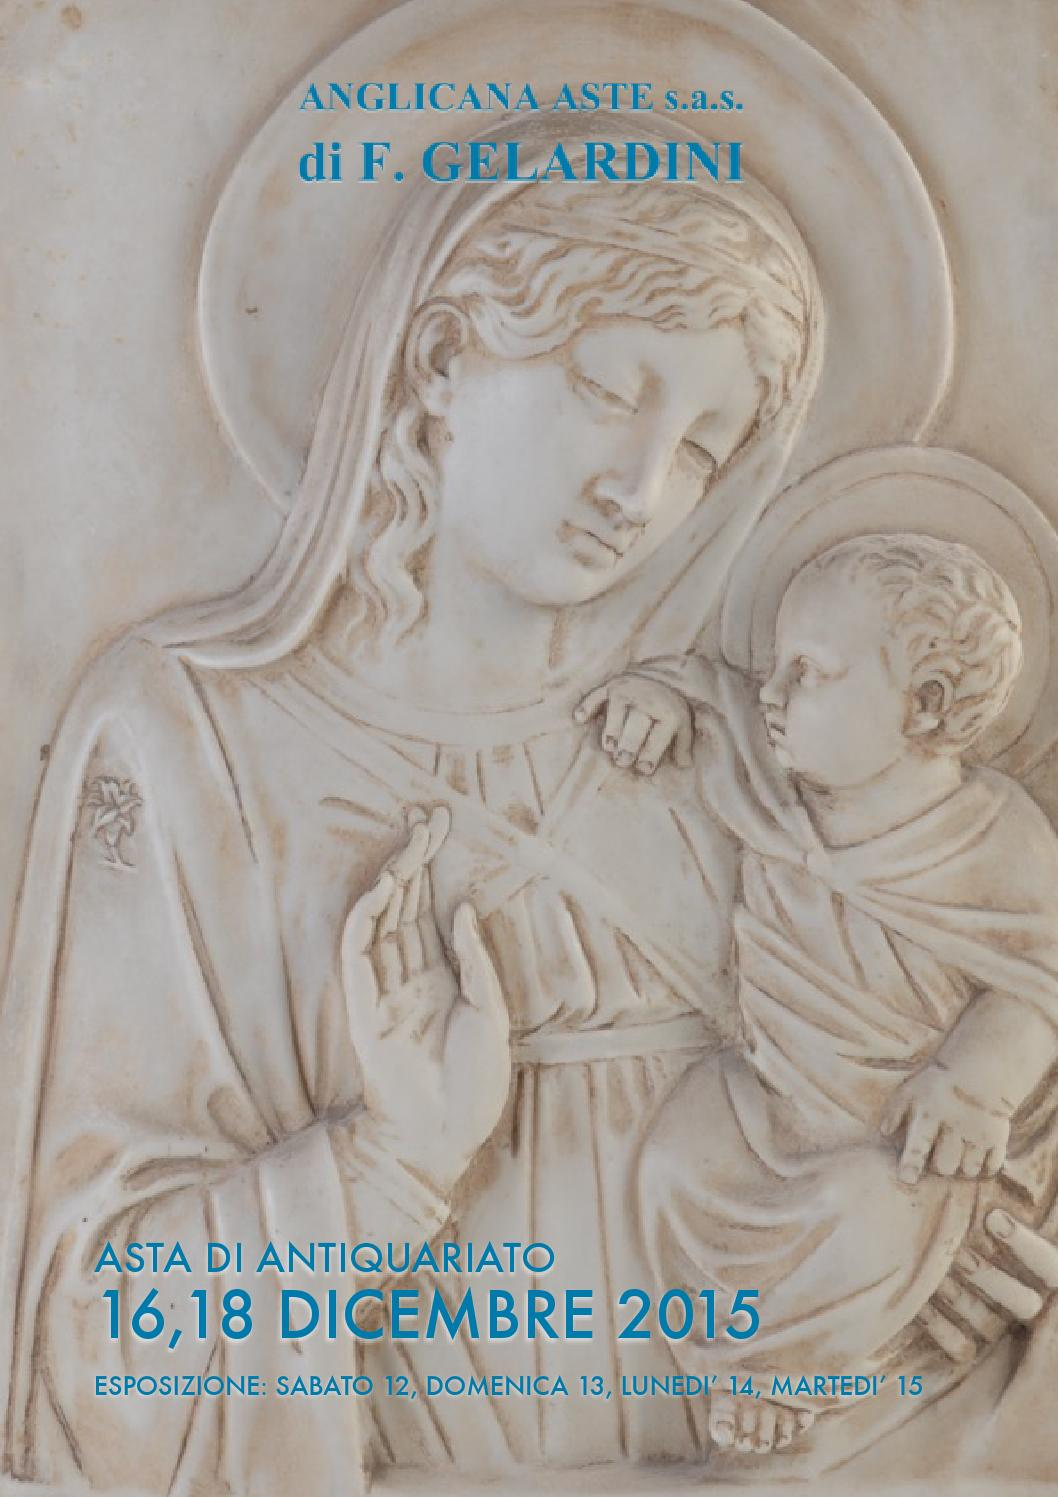 ASTA DI ANTIQUARIATO by Anglicana Aste - issuu